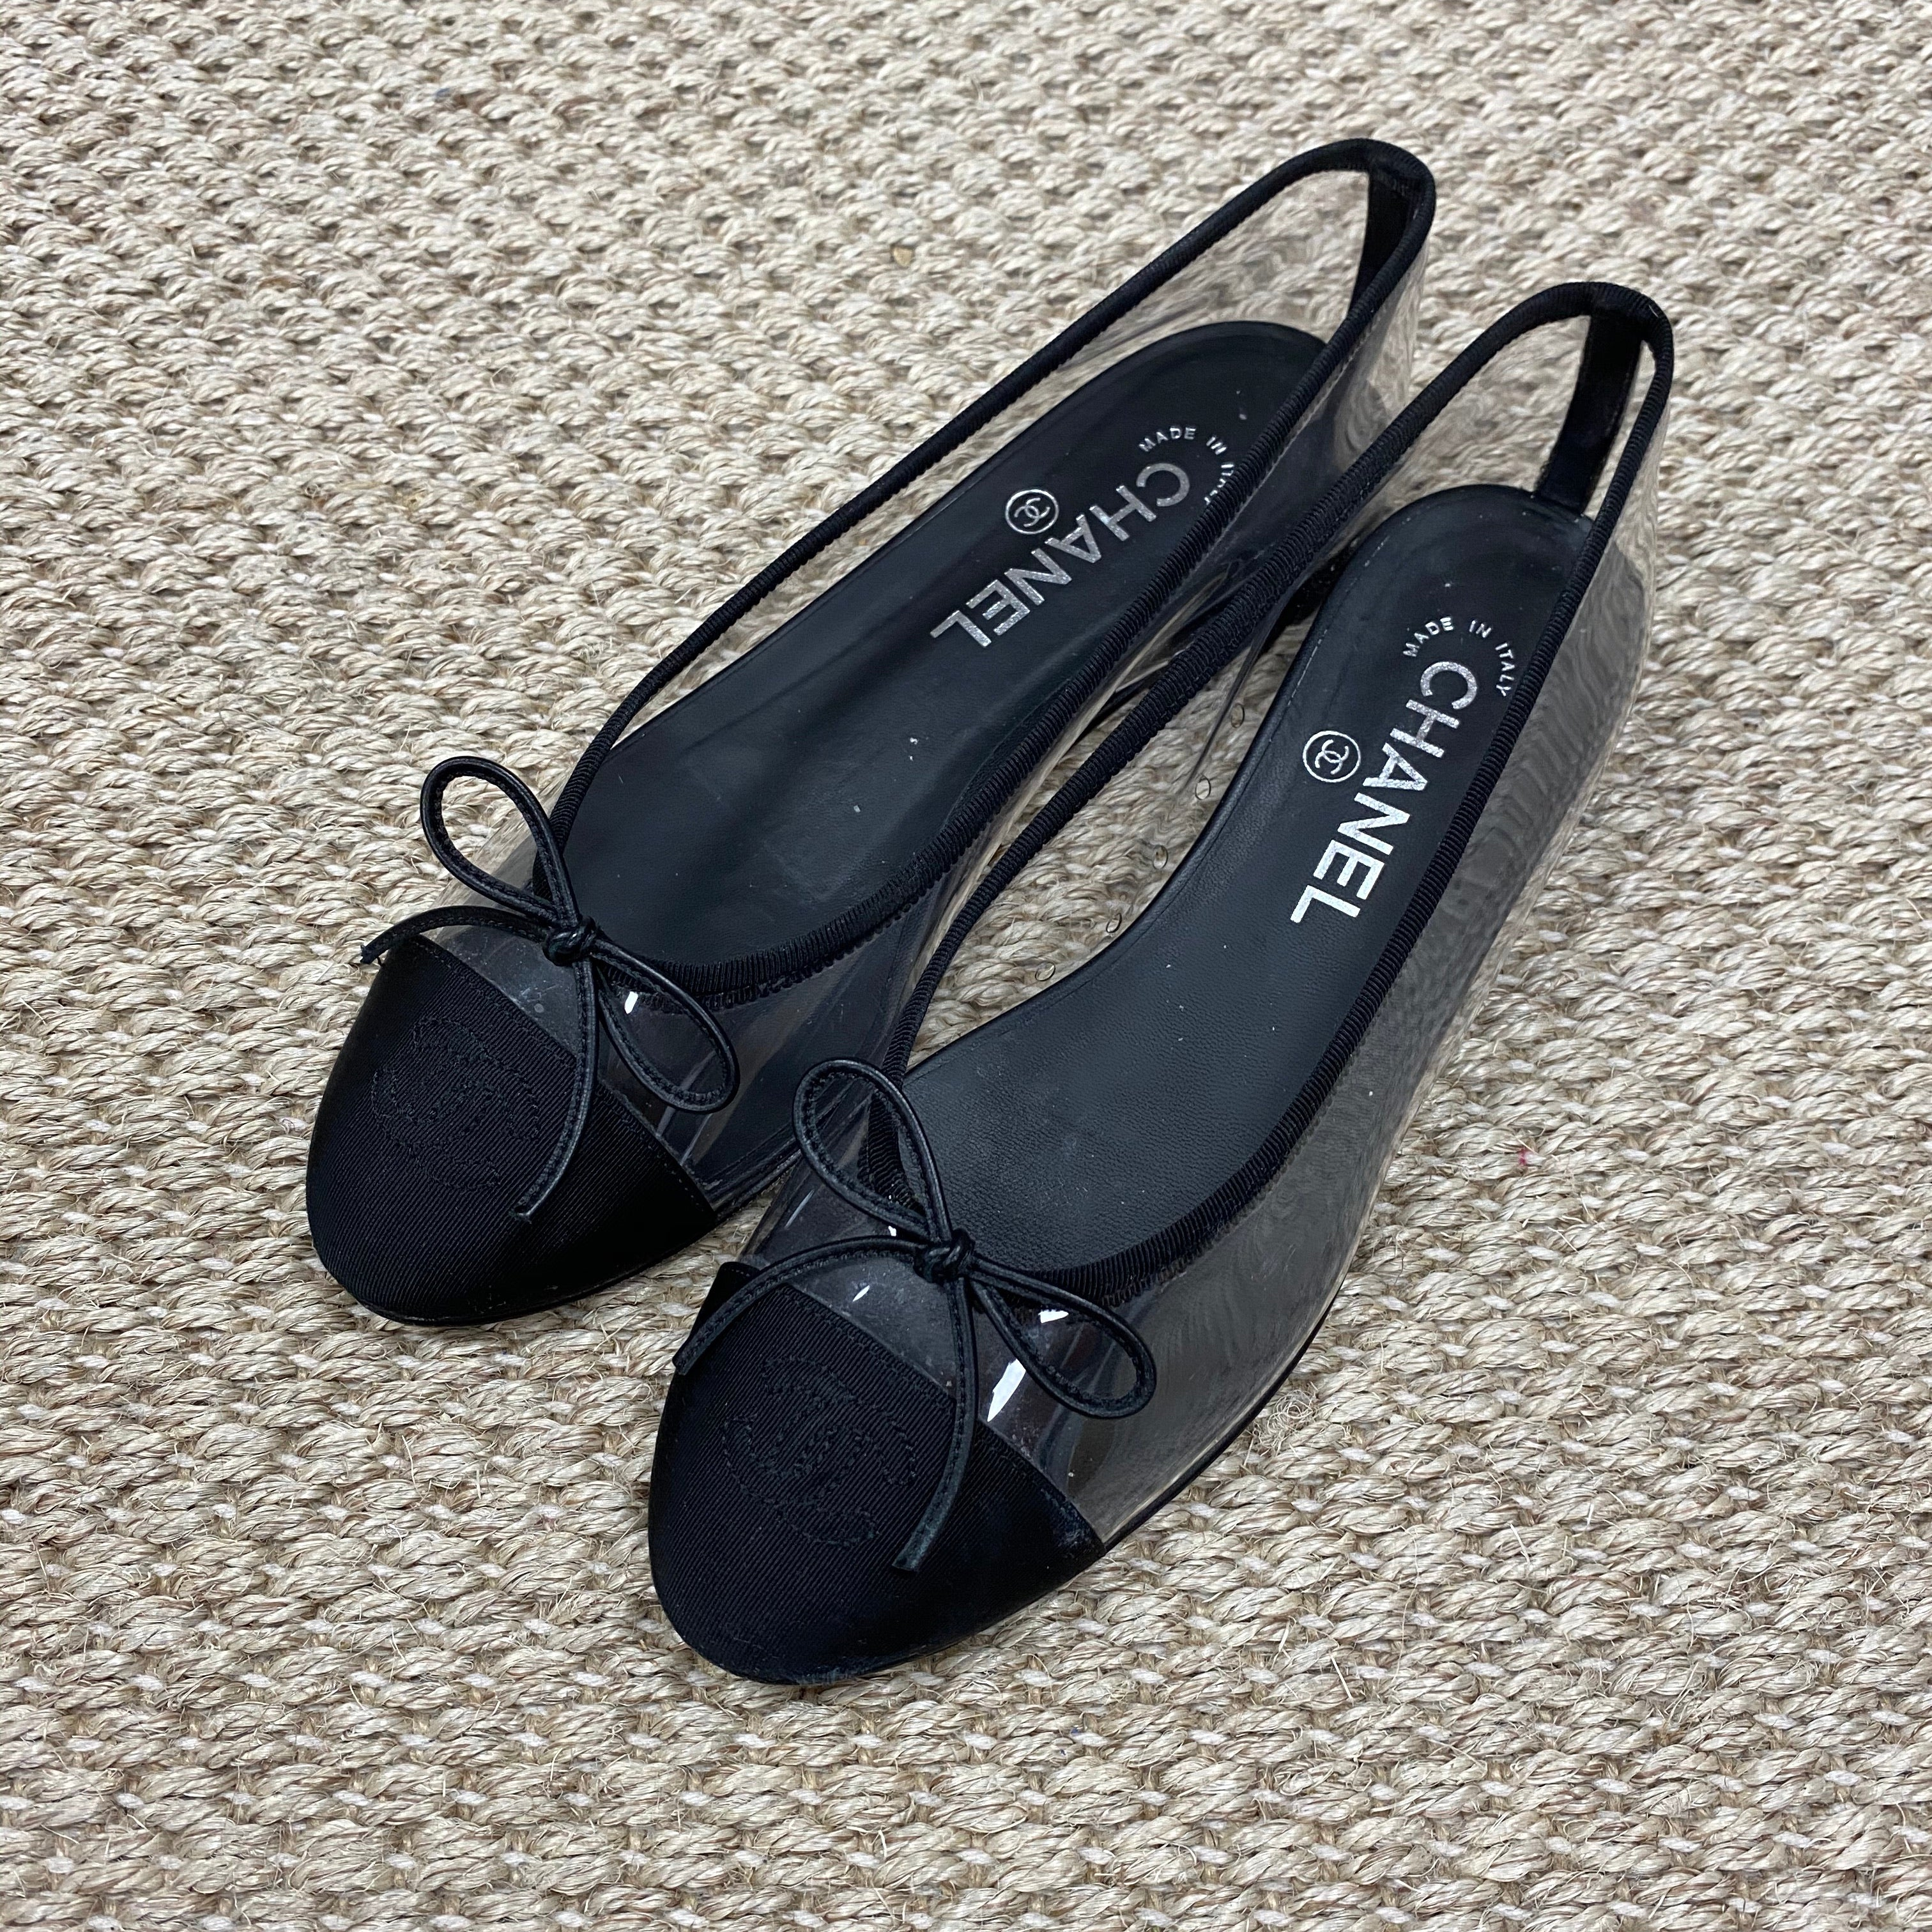 Chanel Clear PVC Ballet Flats